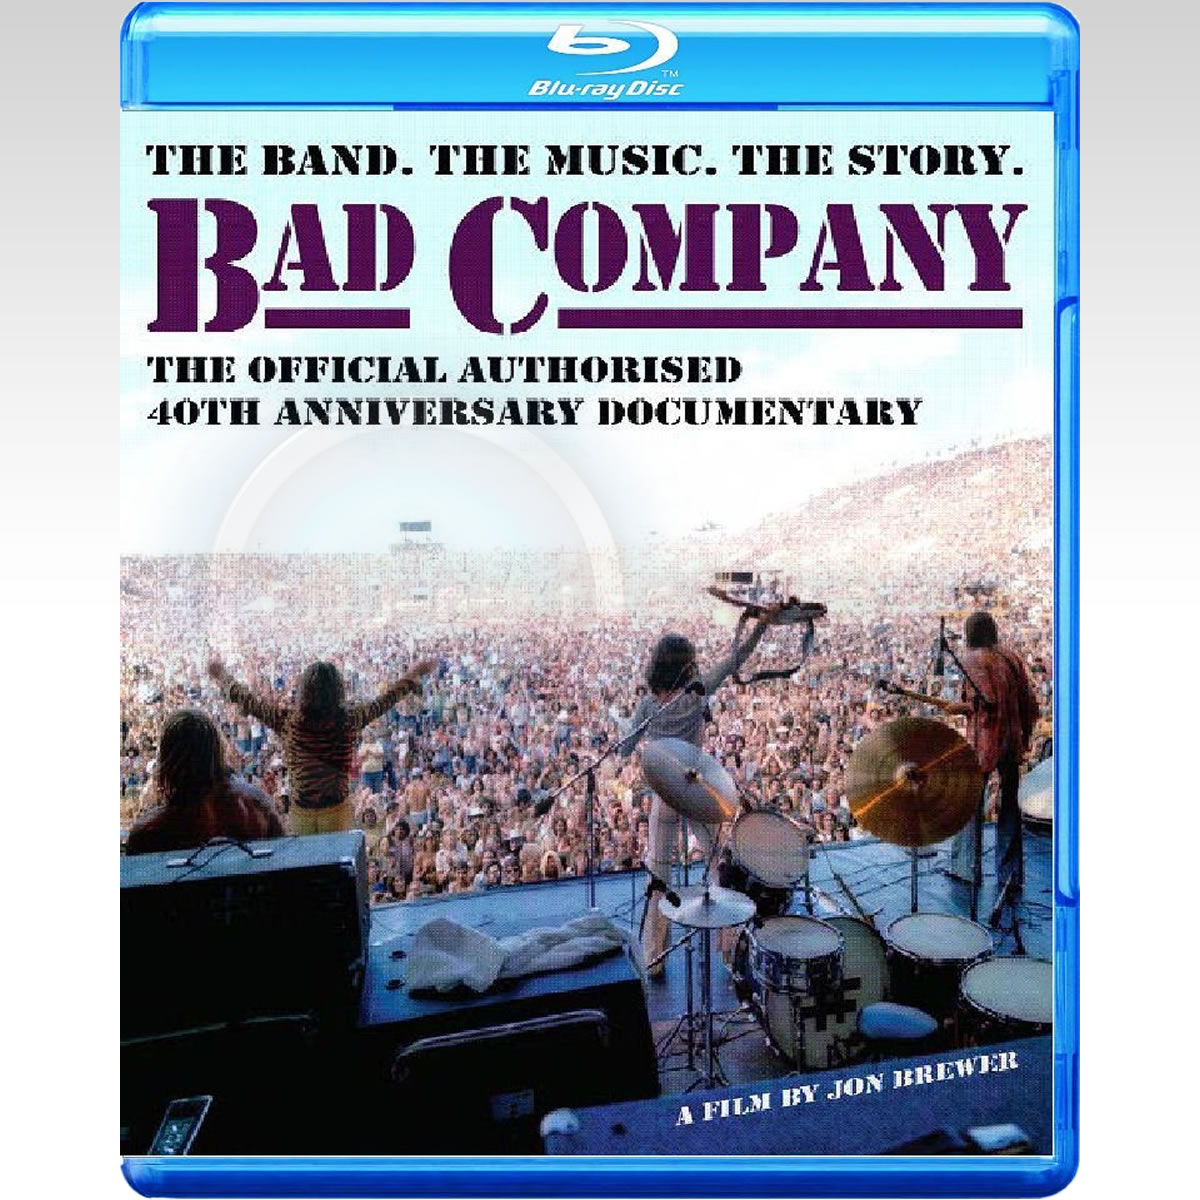 BAD COMPANY: THE OFFICIAL AUTHORISED 40th ANNIVERSARY DOCUMENTARY (BLU-RAY)